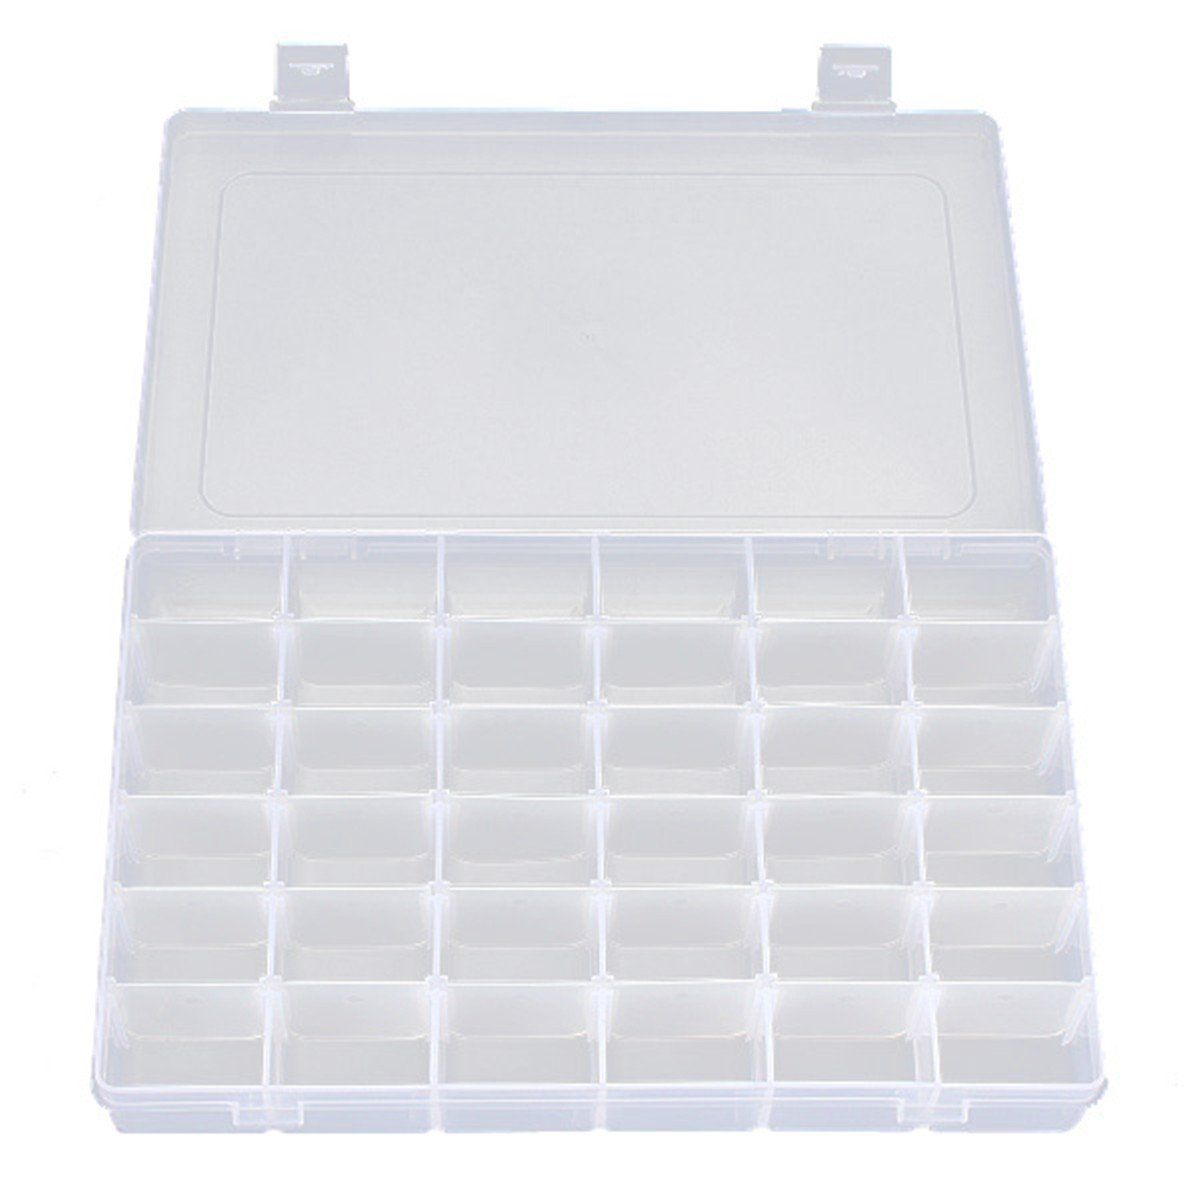 OULII Clear Plastic Jewelry Box Organizer Storage Container with